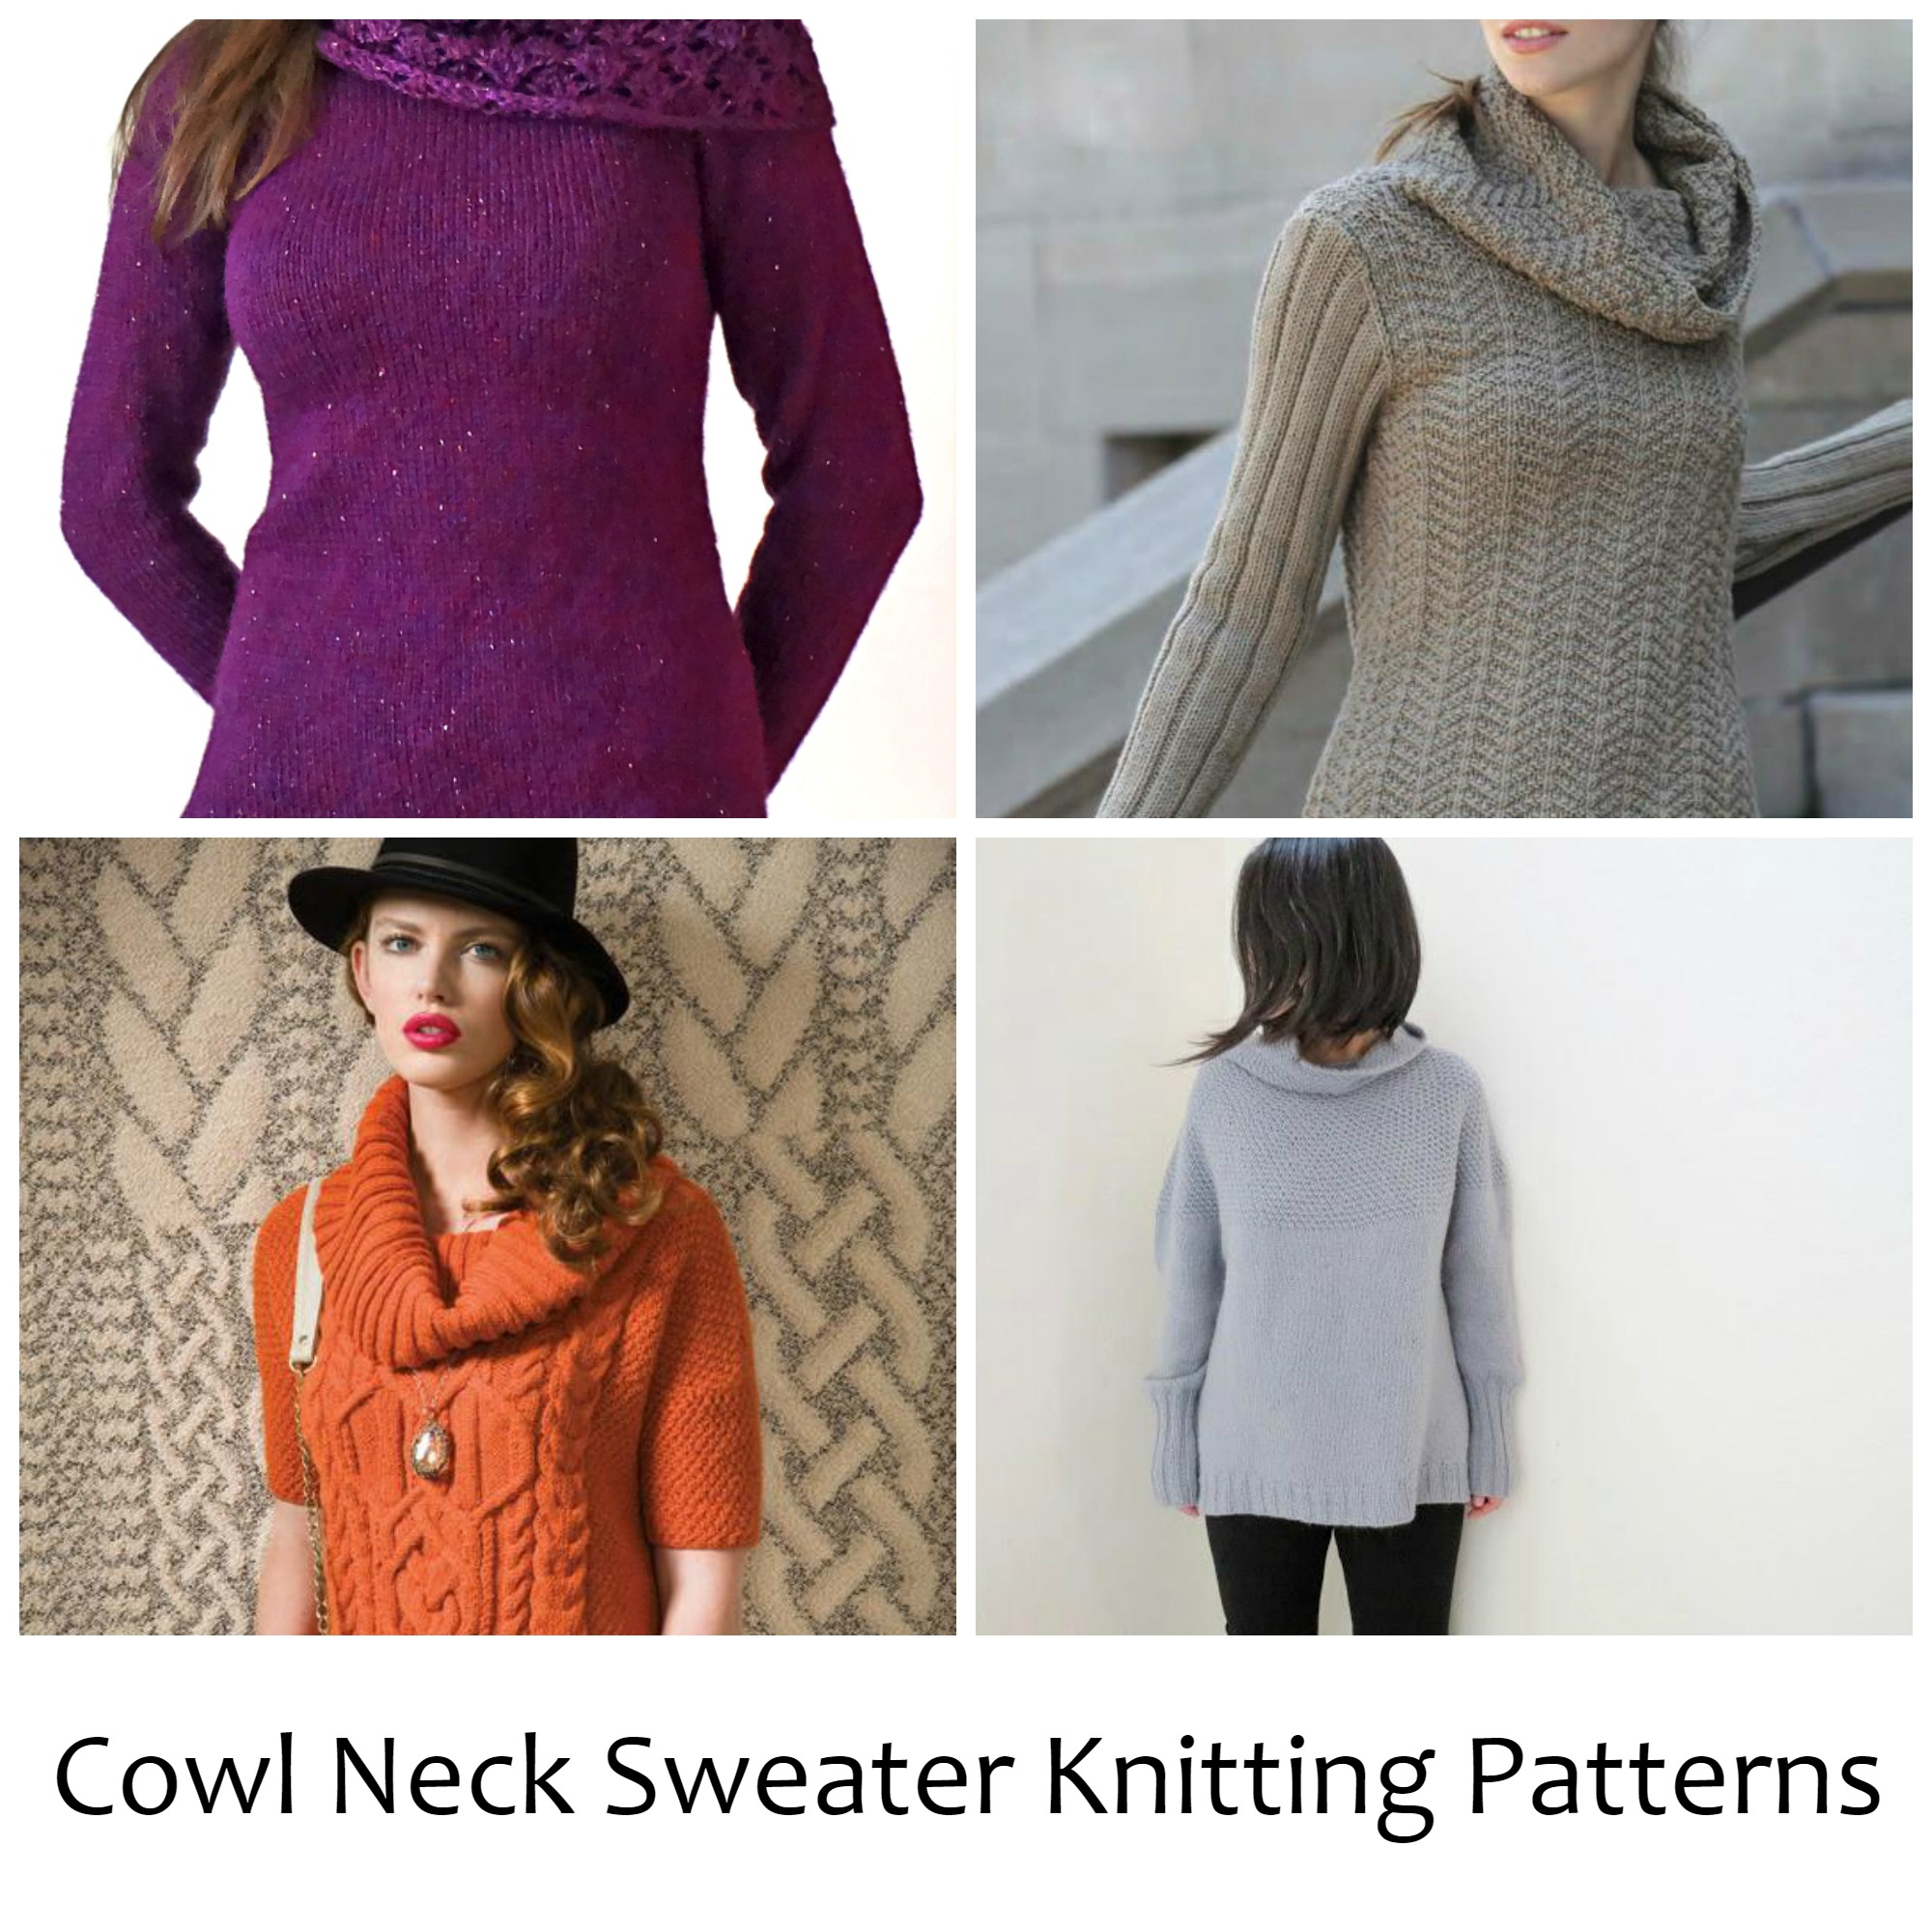 Knitted Pullover Sweater Patterns 10 Cozy Cowl Neck Sweater Knitting Patterns